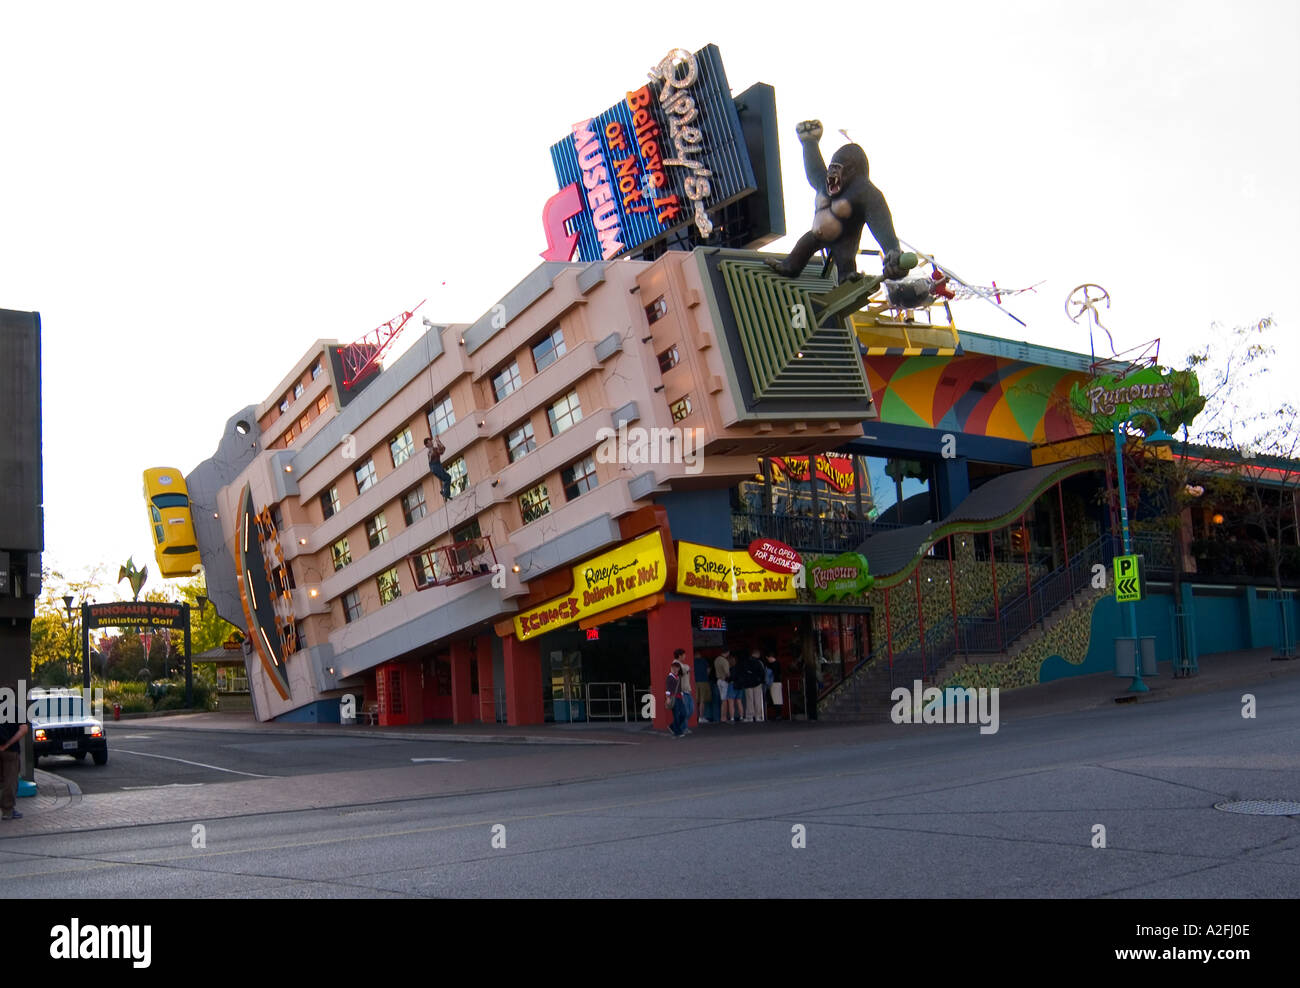 Ripley's Believe It Or Not Niagara Falls Canada - Stock Image